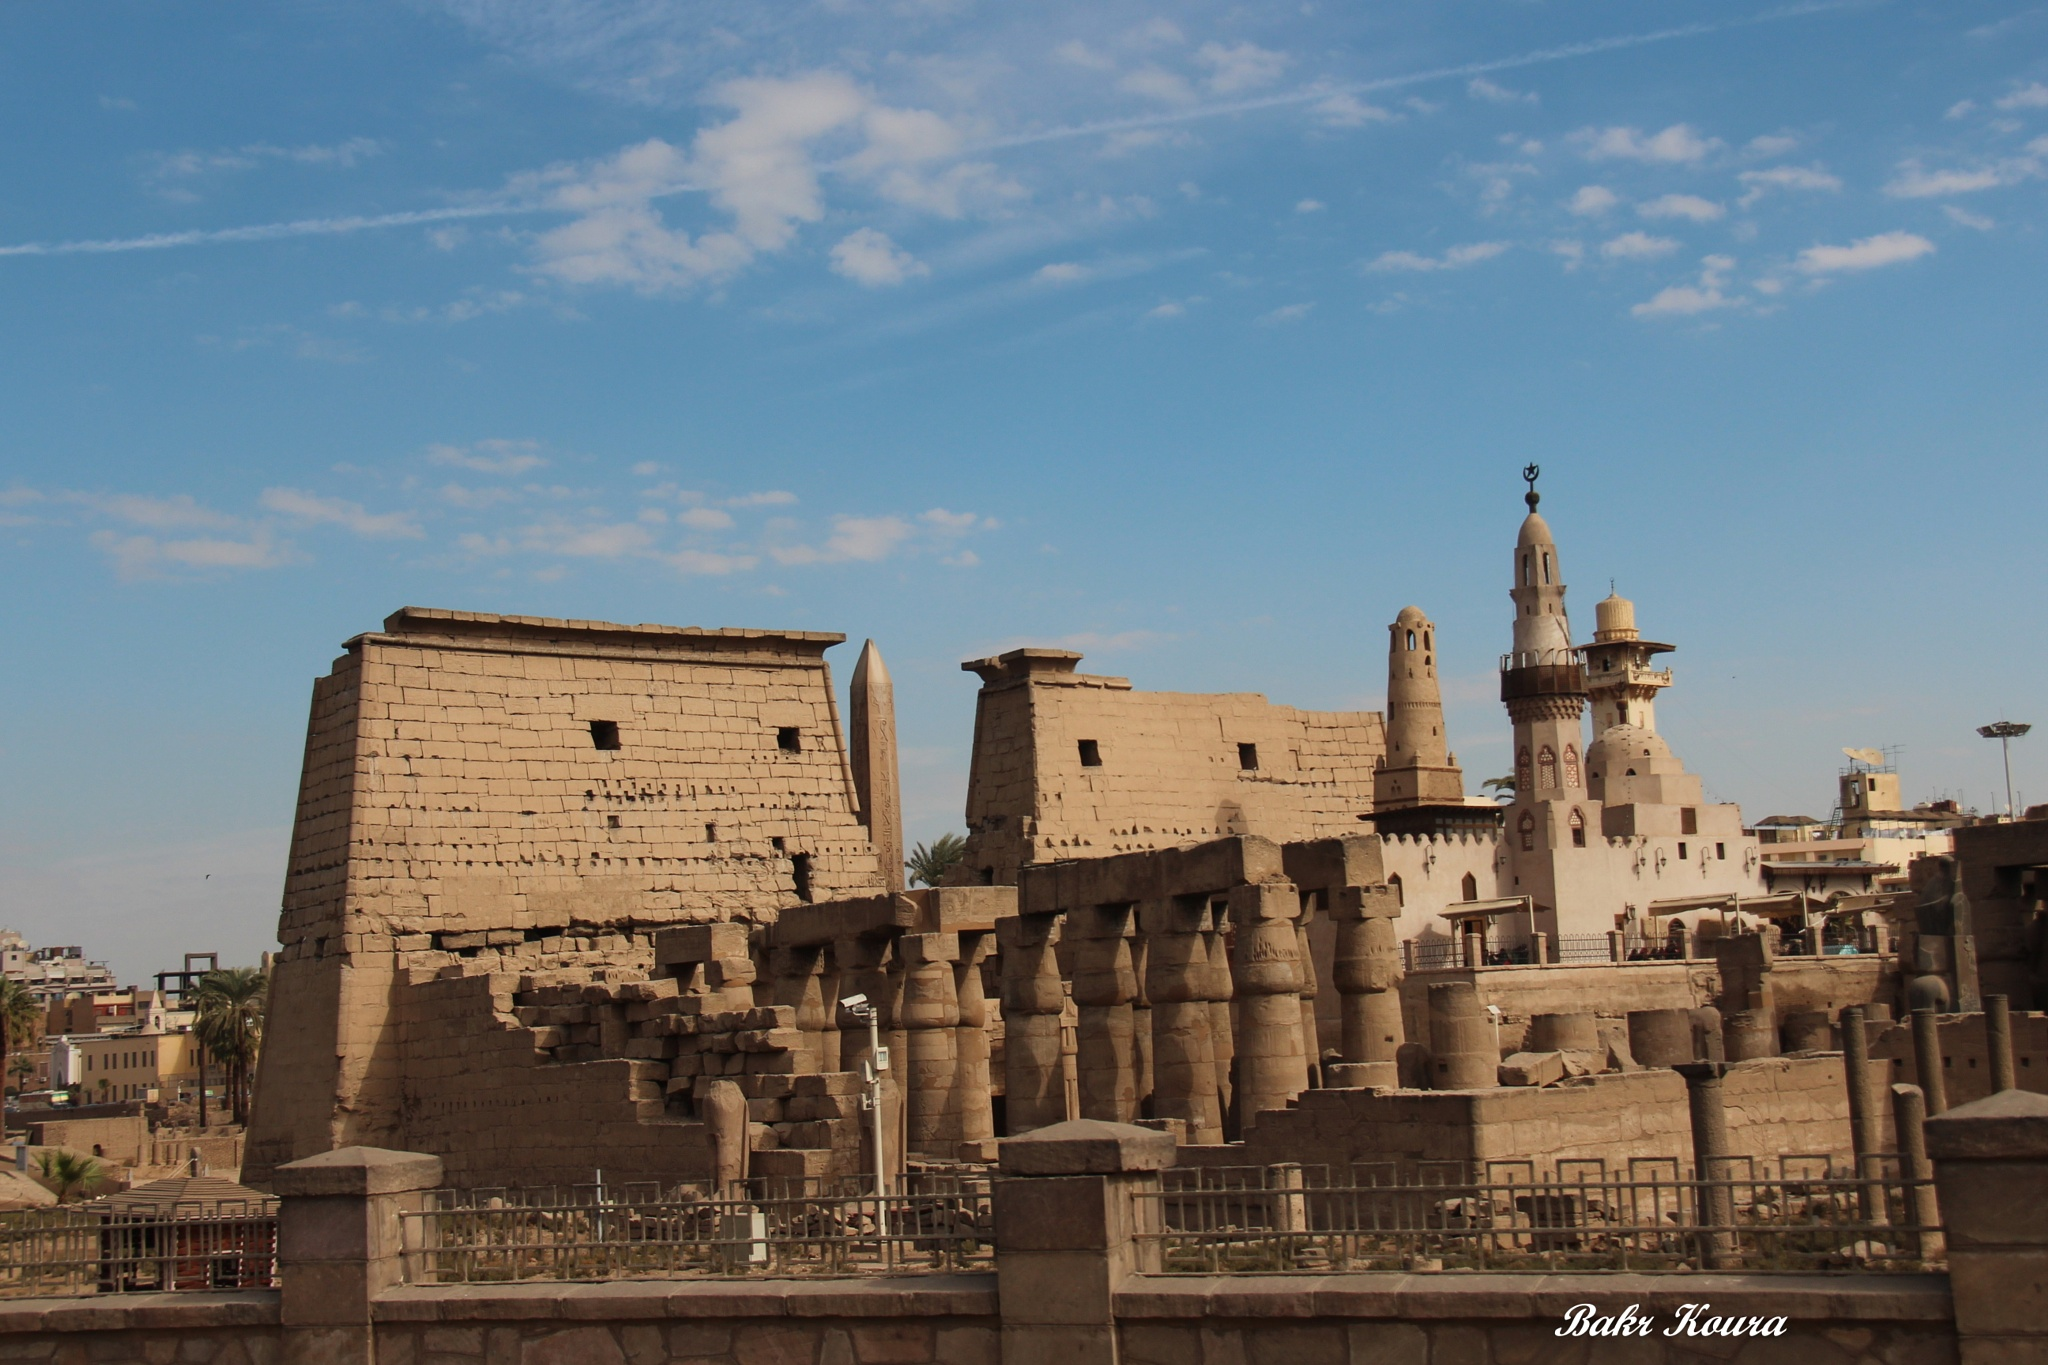 Luxor Temple with the mosque on top by Bakr Koura